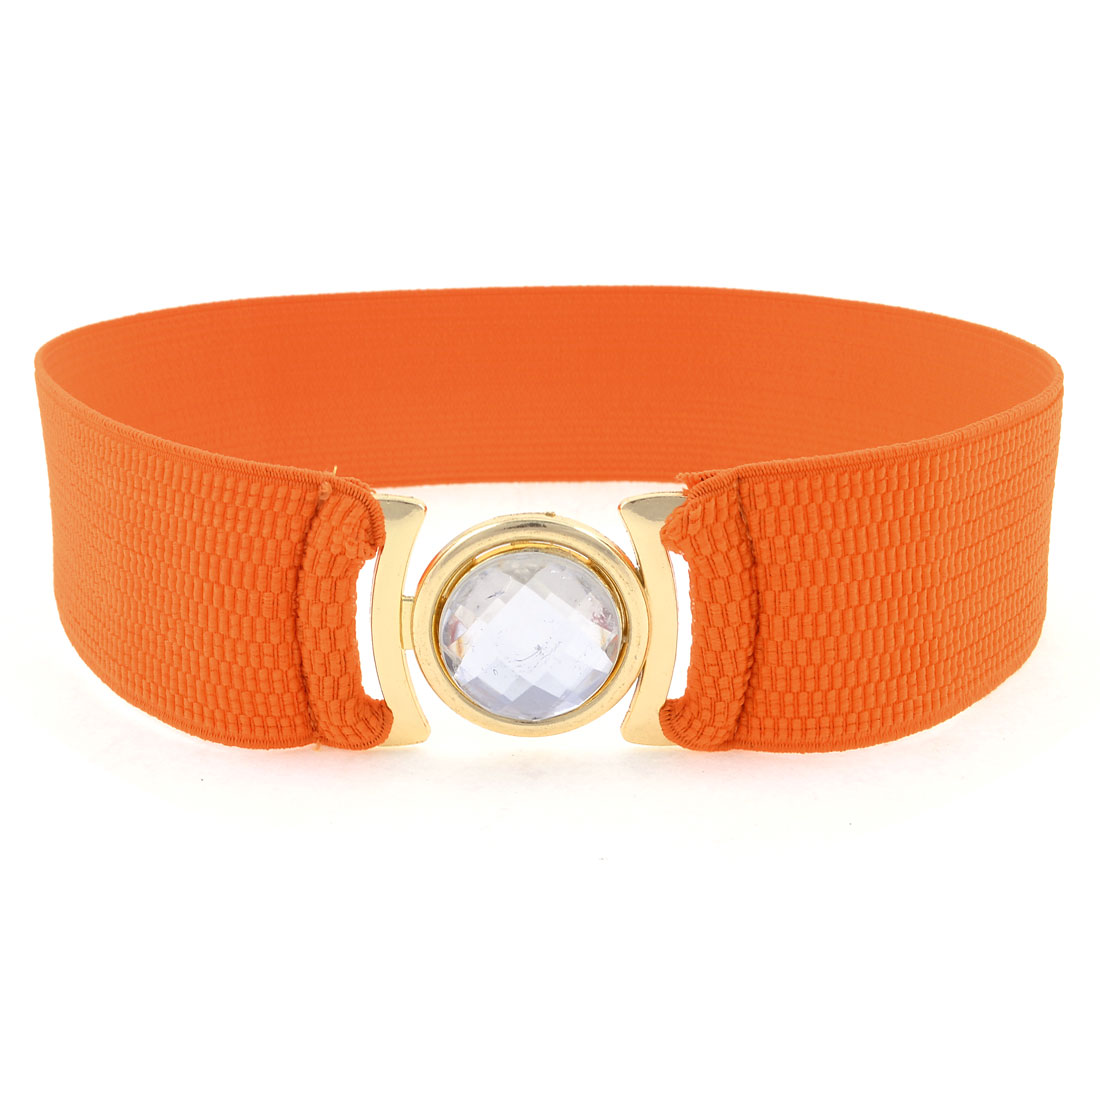 Women Square Metal Interlocking Buckle Stretchy Cinch Belt Waist Band Orange